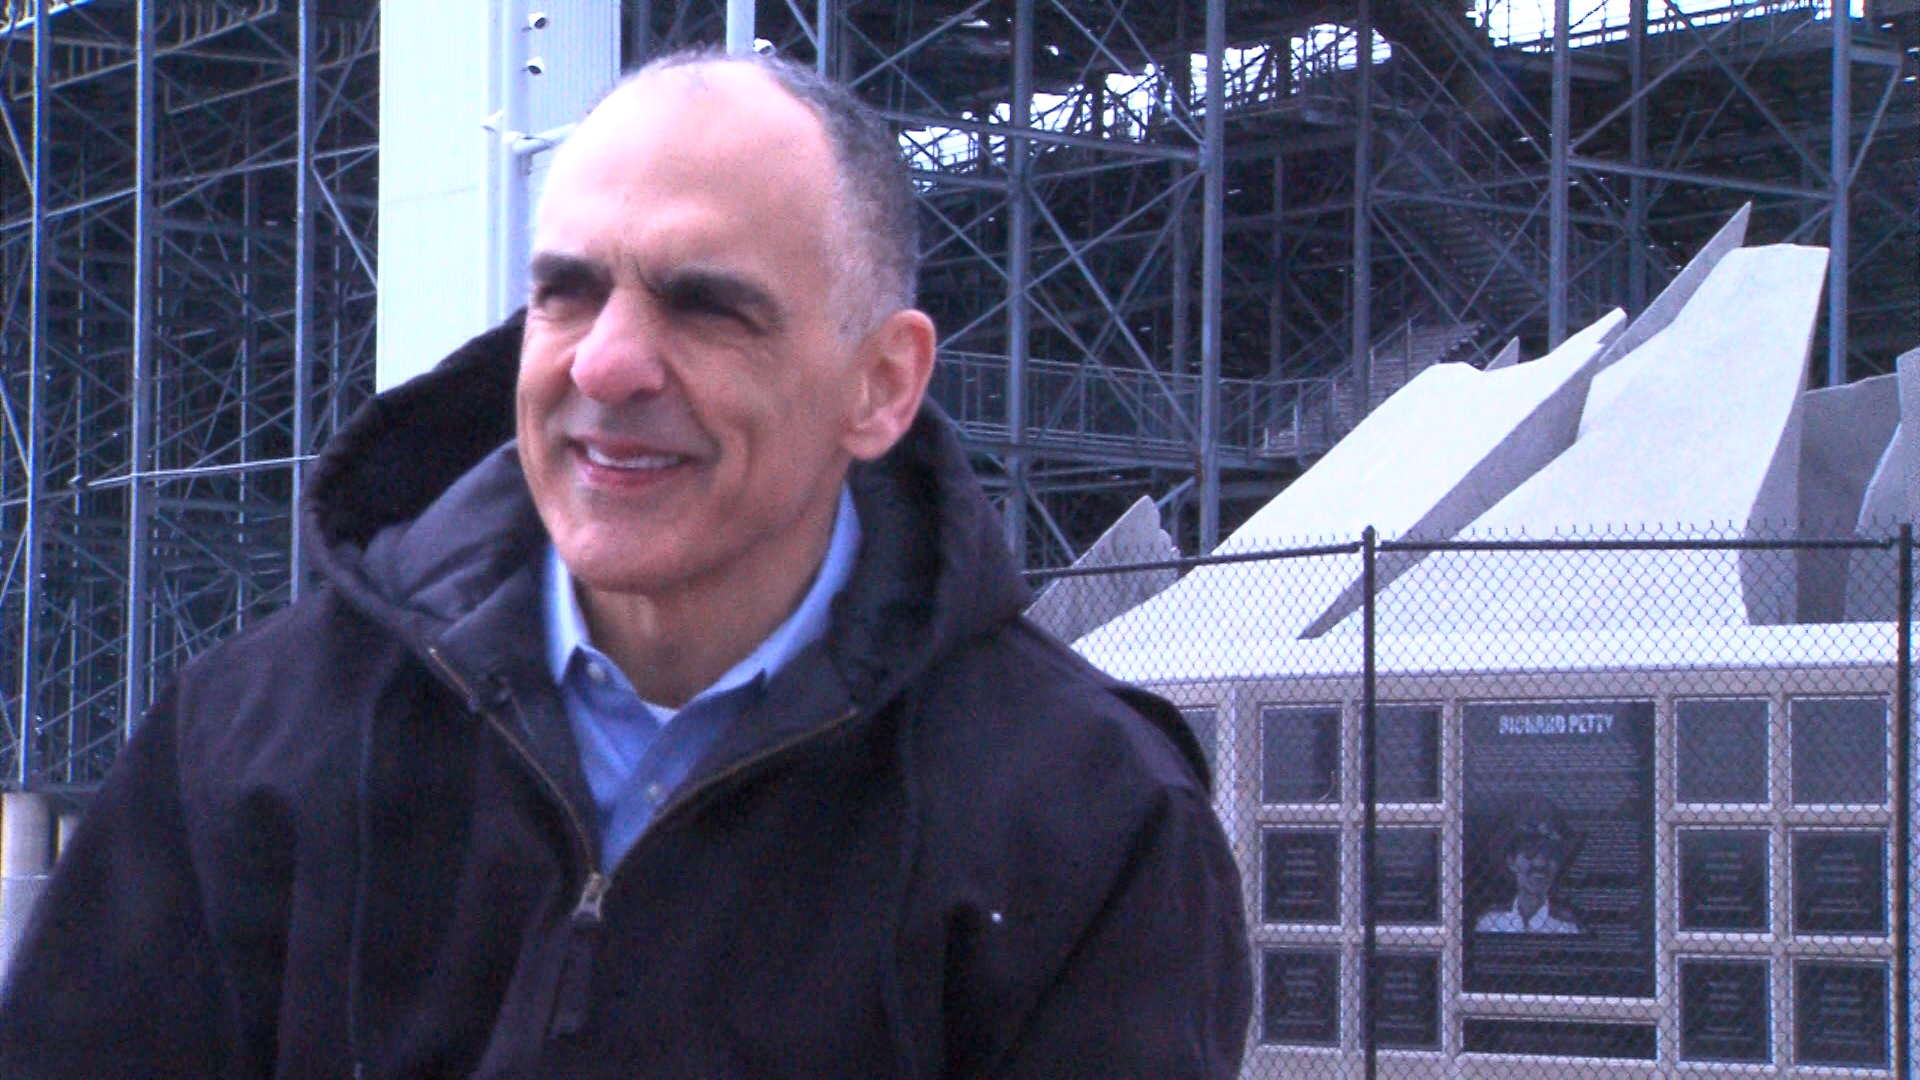 WBOC Sports Catches up with Dover International Speedway CEO Mike Tatoian on the Recent NASCAR Schedule Changes